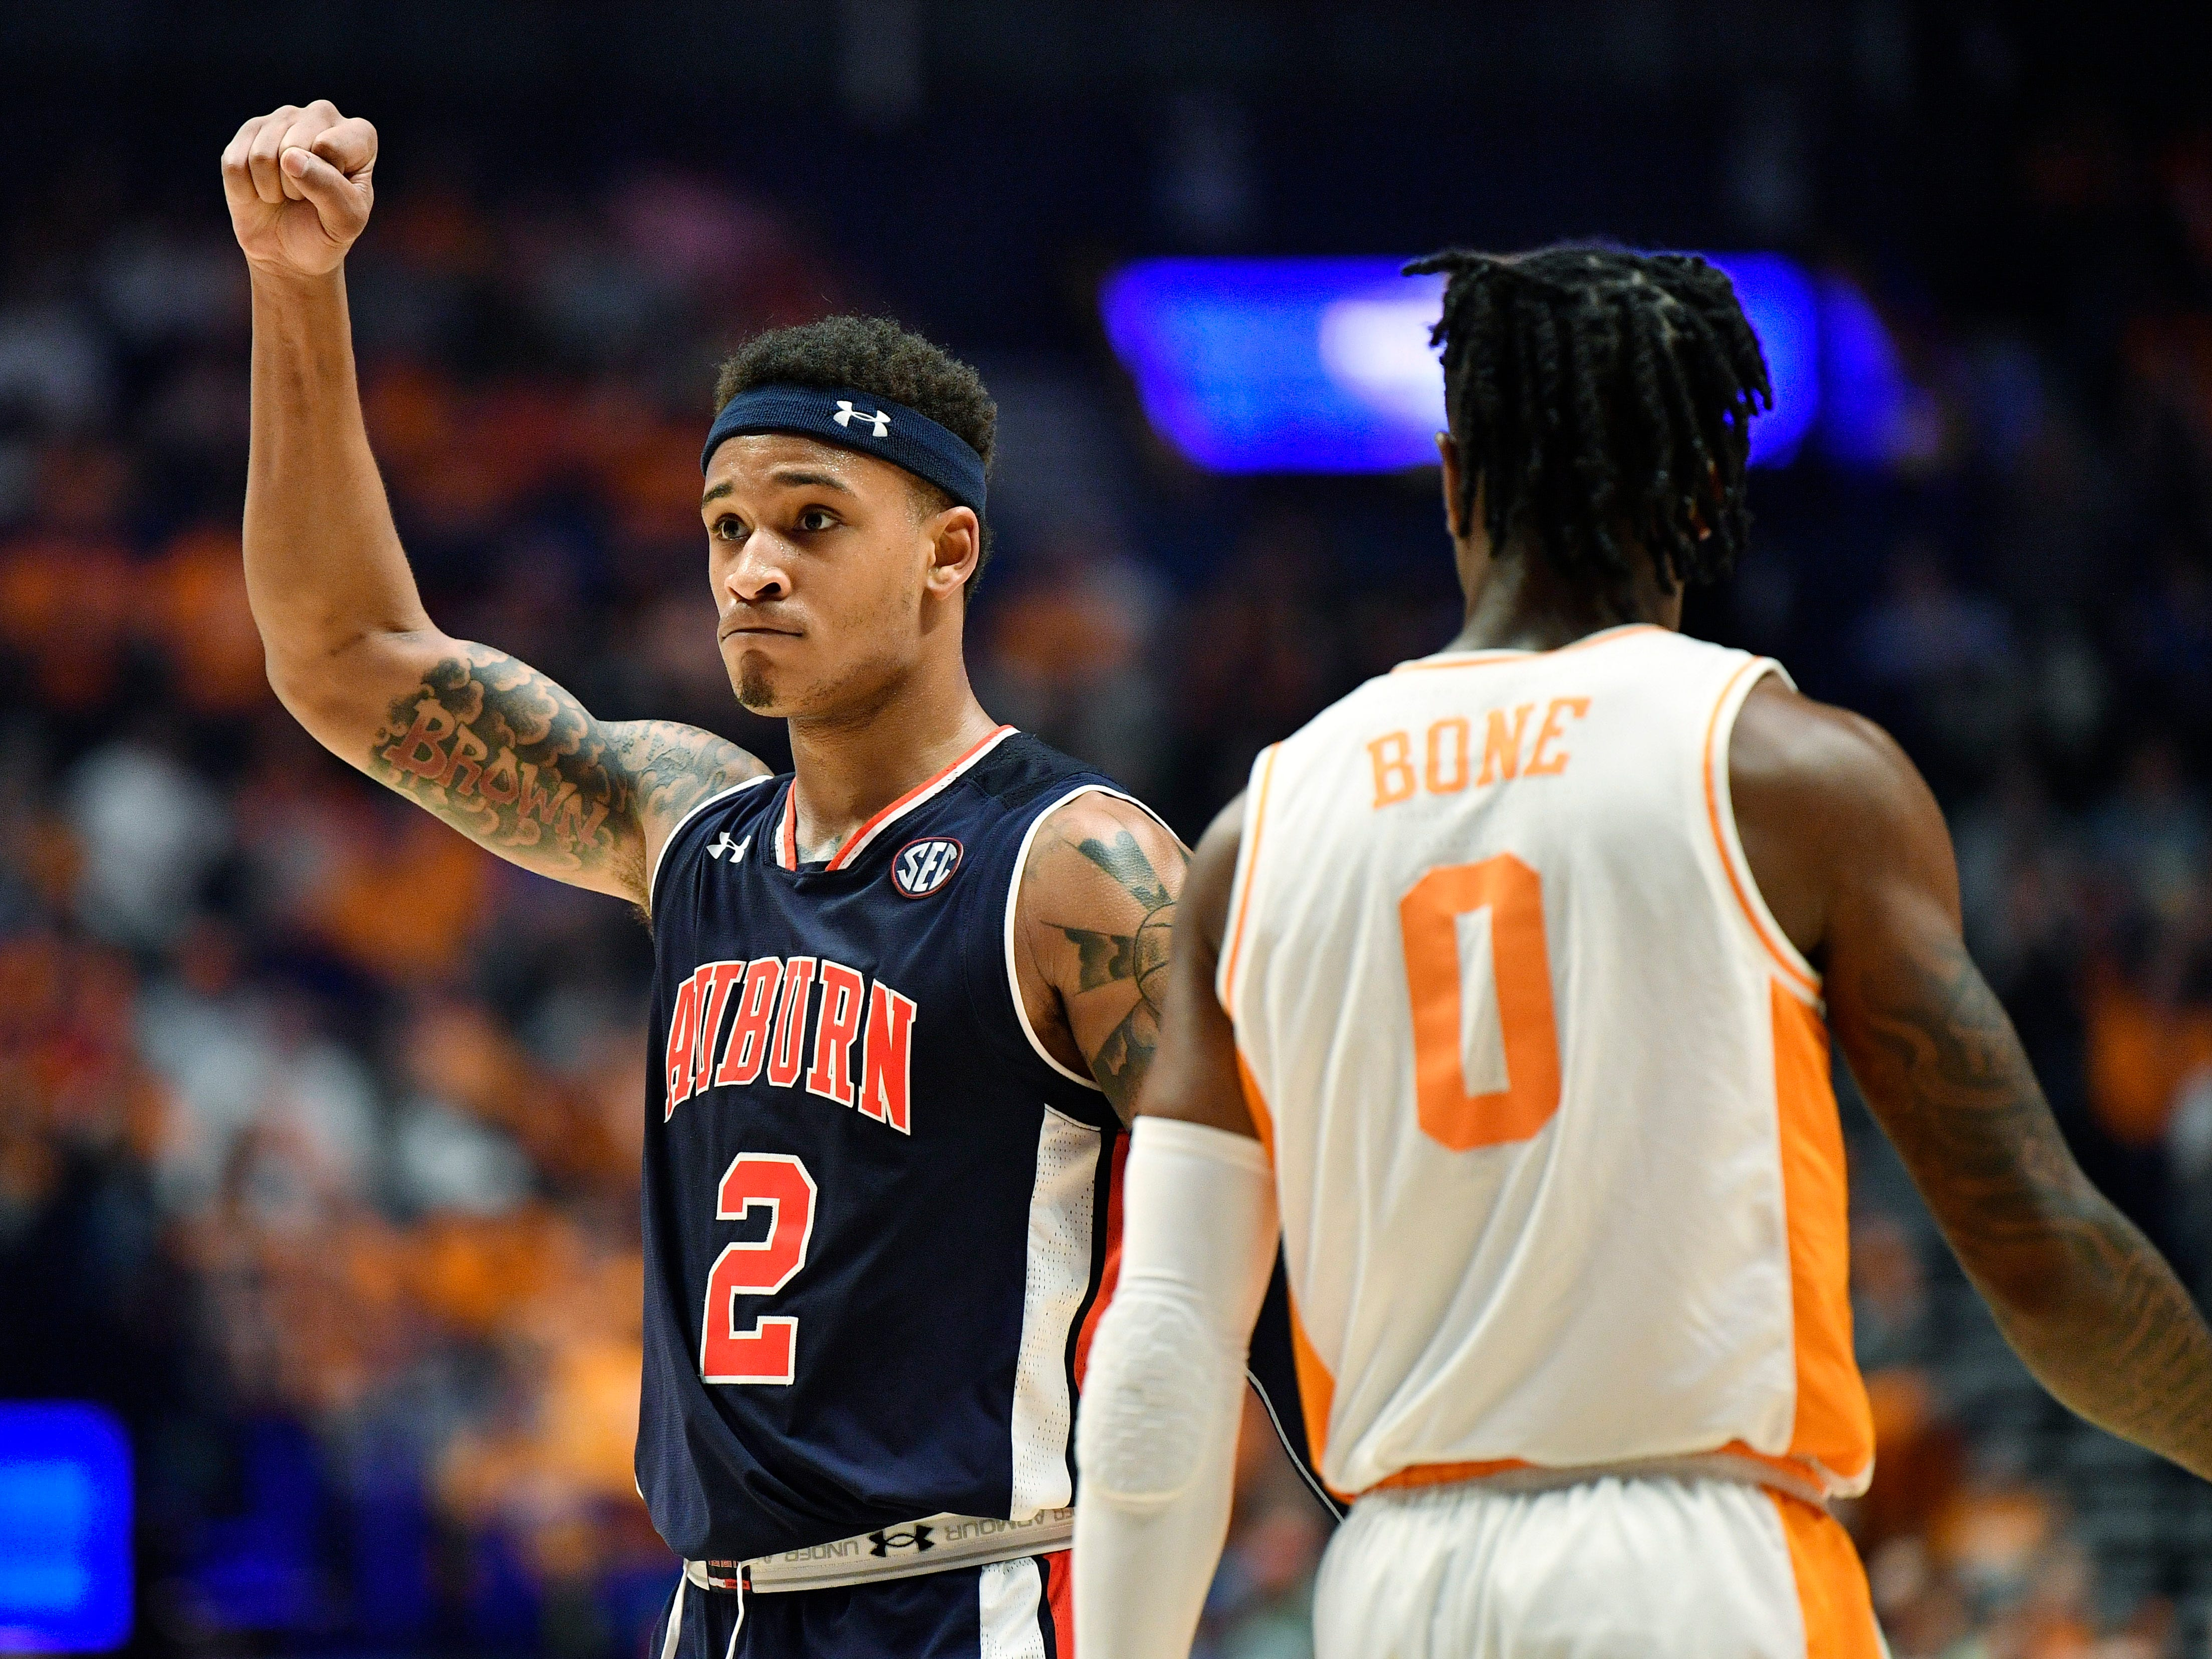 Auburn guard Bryce Brown (2) reacts as Tennessee guard Jordan Bone (0) walks by during the second half of the SEC Men's Basketball Tournament championship game at Bridgestone Arena in Nashville, Tenn., Sunday, March 17, 2019.